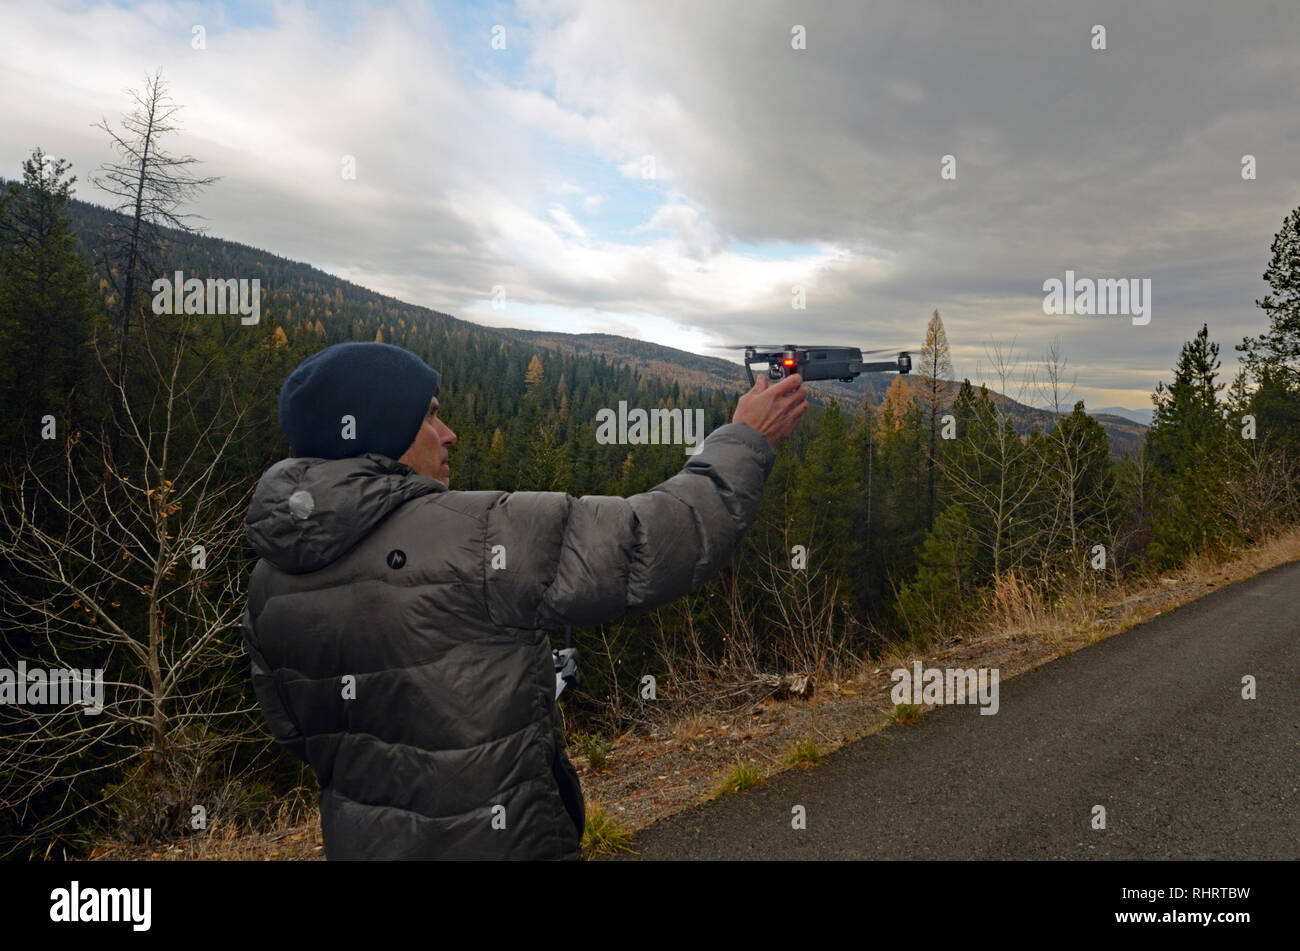 Filmmaker Scott Rulander operates a DJI Mavic Pro drone during a videography session in the Purcell Mountains, northwest Montana. - Stock Image